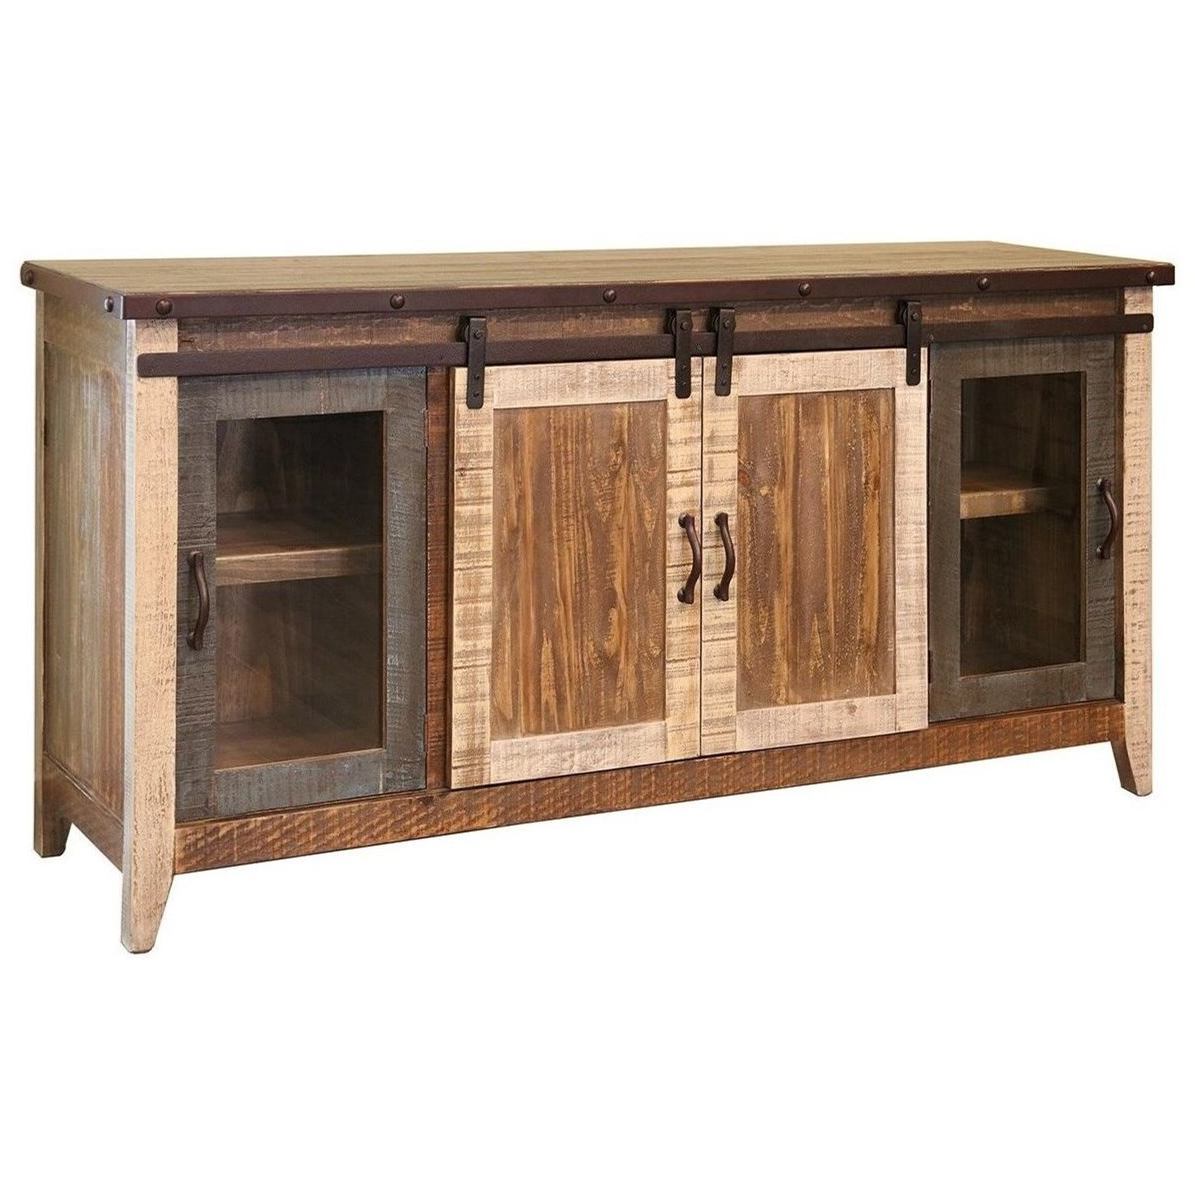 """Vfm Signature 900 Antique Rustic 70"""" Tv Stand With Sliding Intended For Robinson Rustic Farmhouse Sliding Barn Door Corner Tv Stands (View 11 of 20)"""